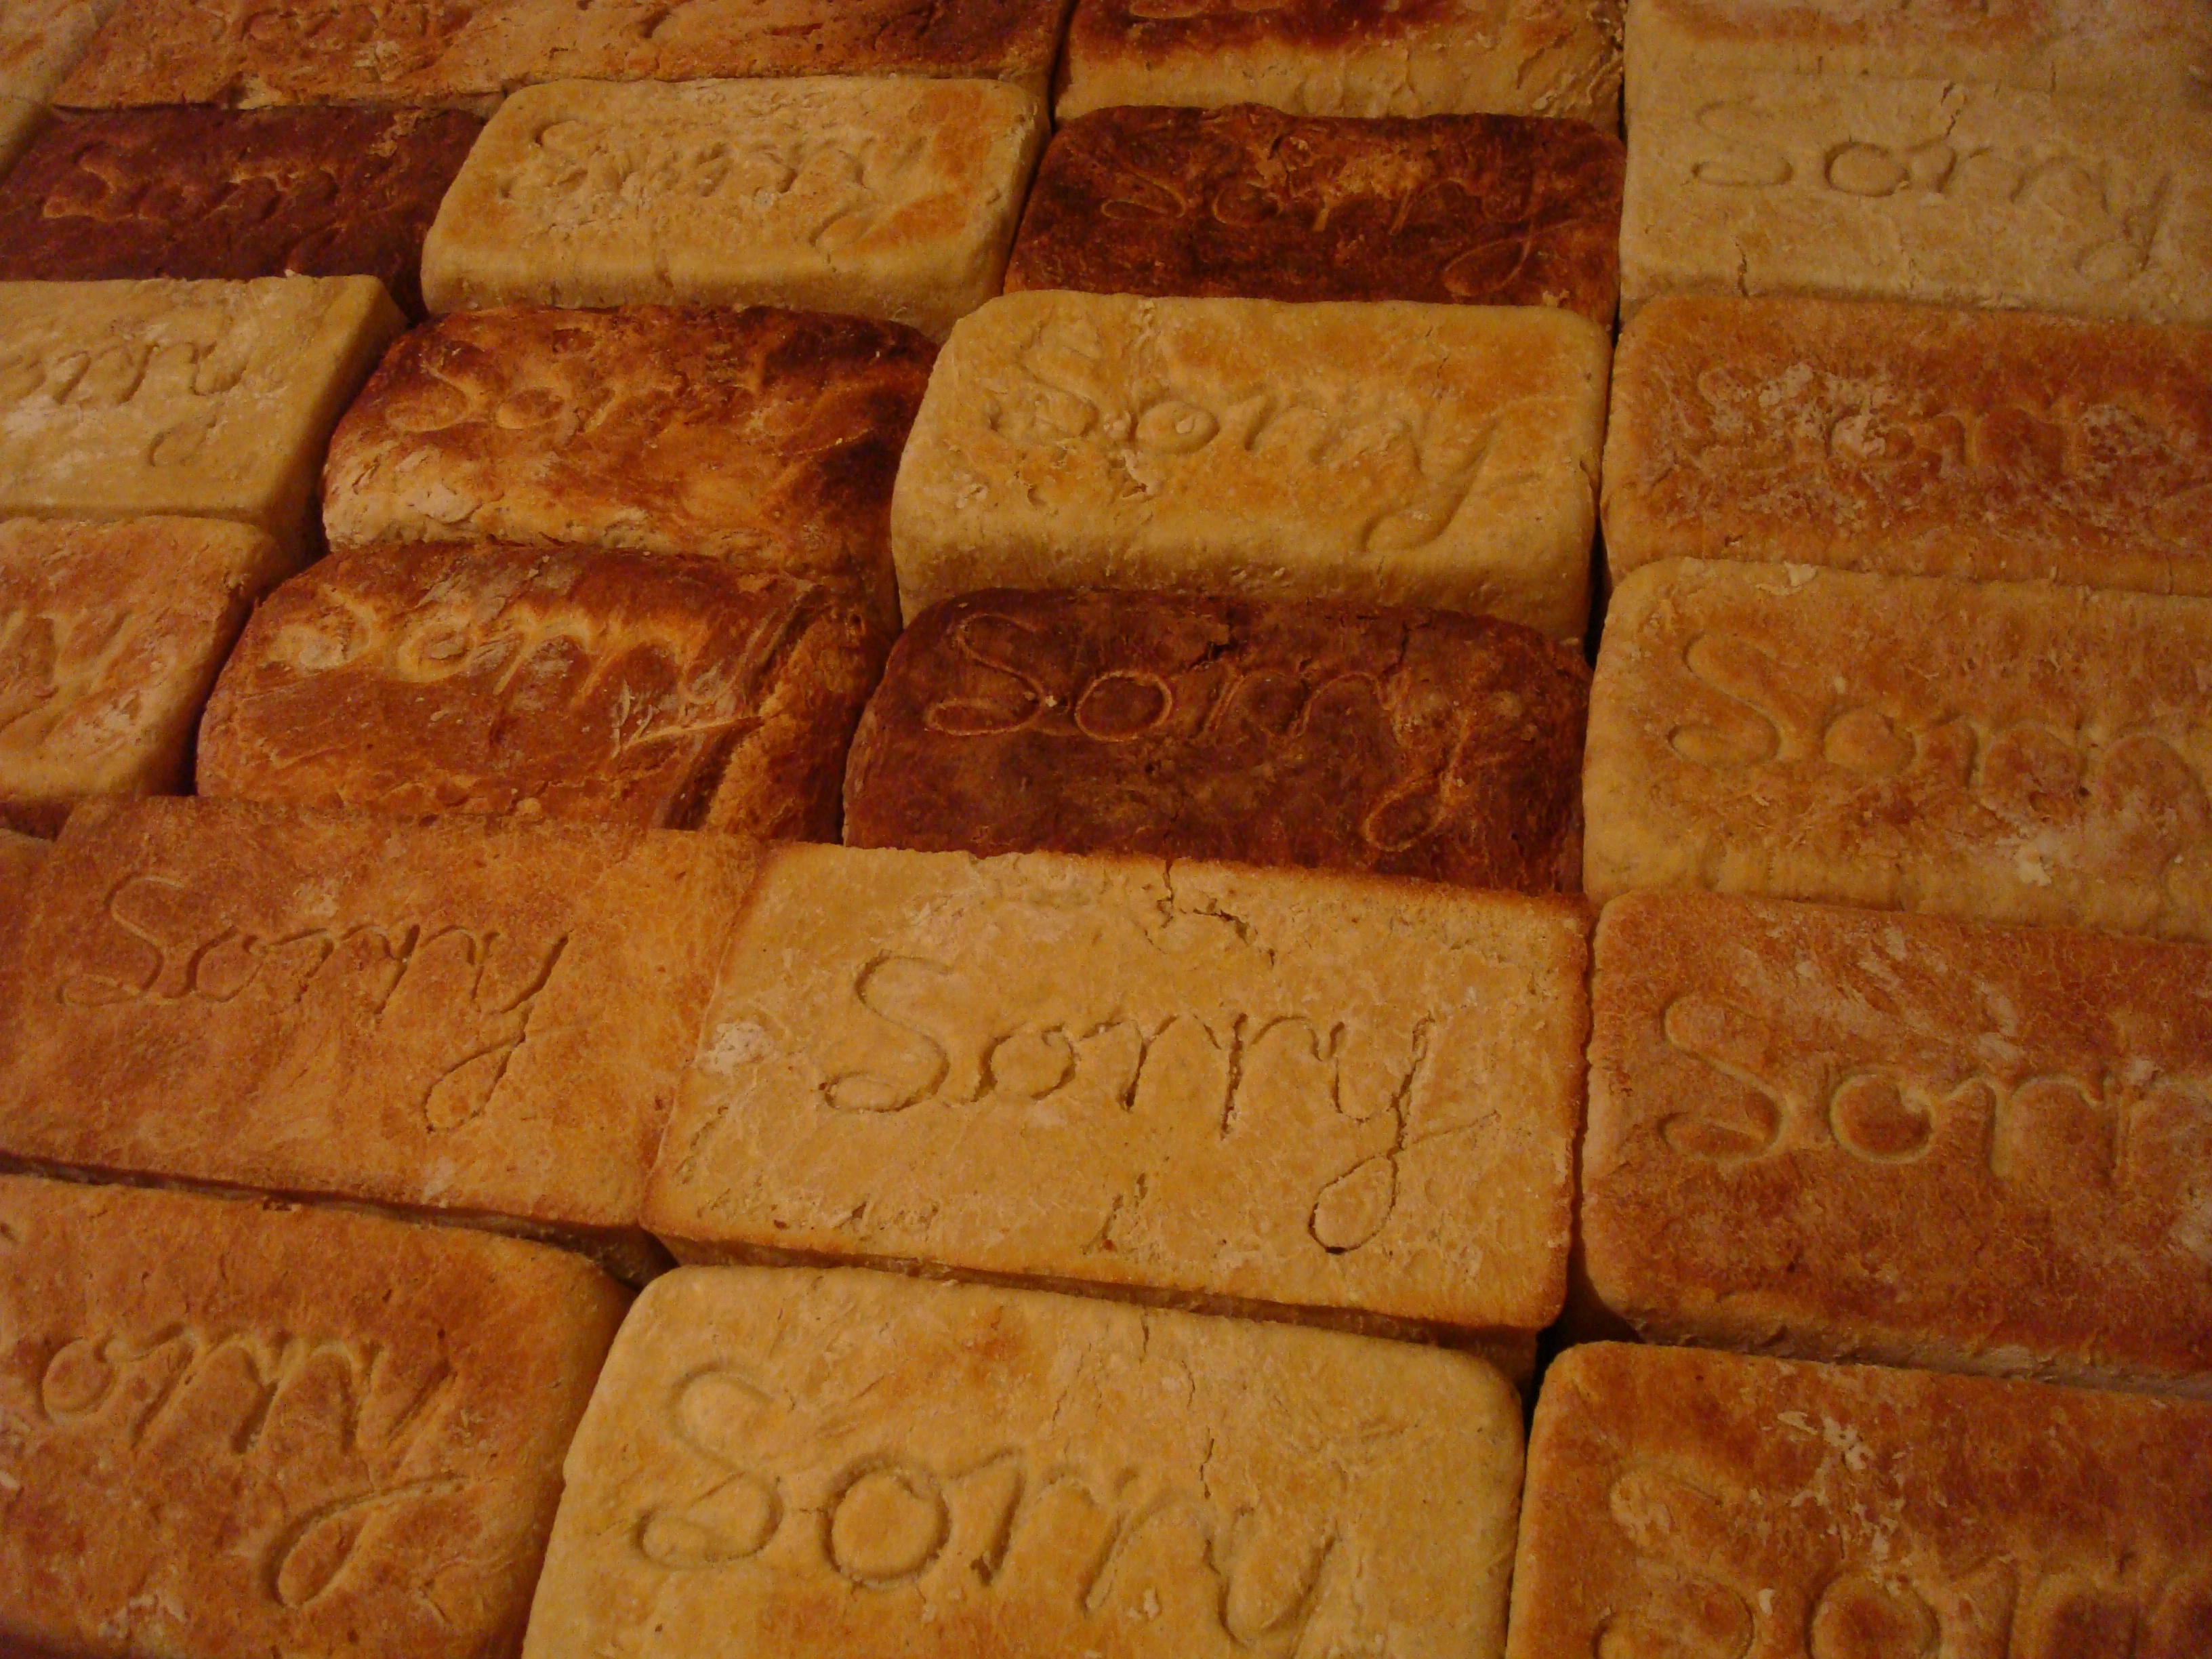 Sorry (bread) (detail)